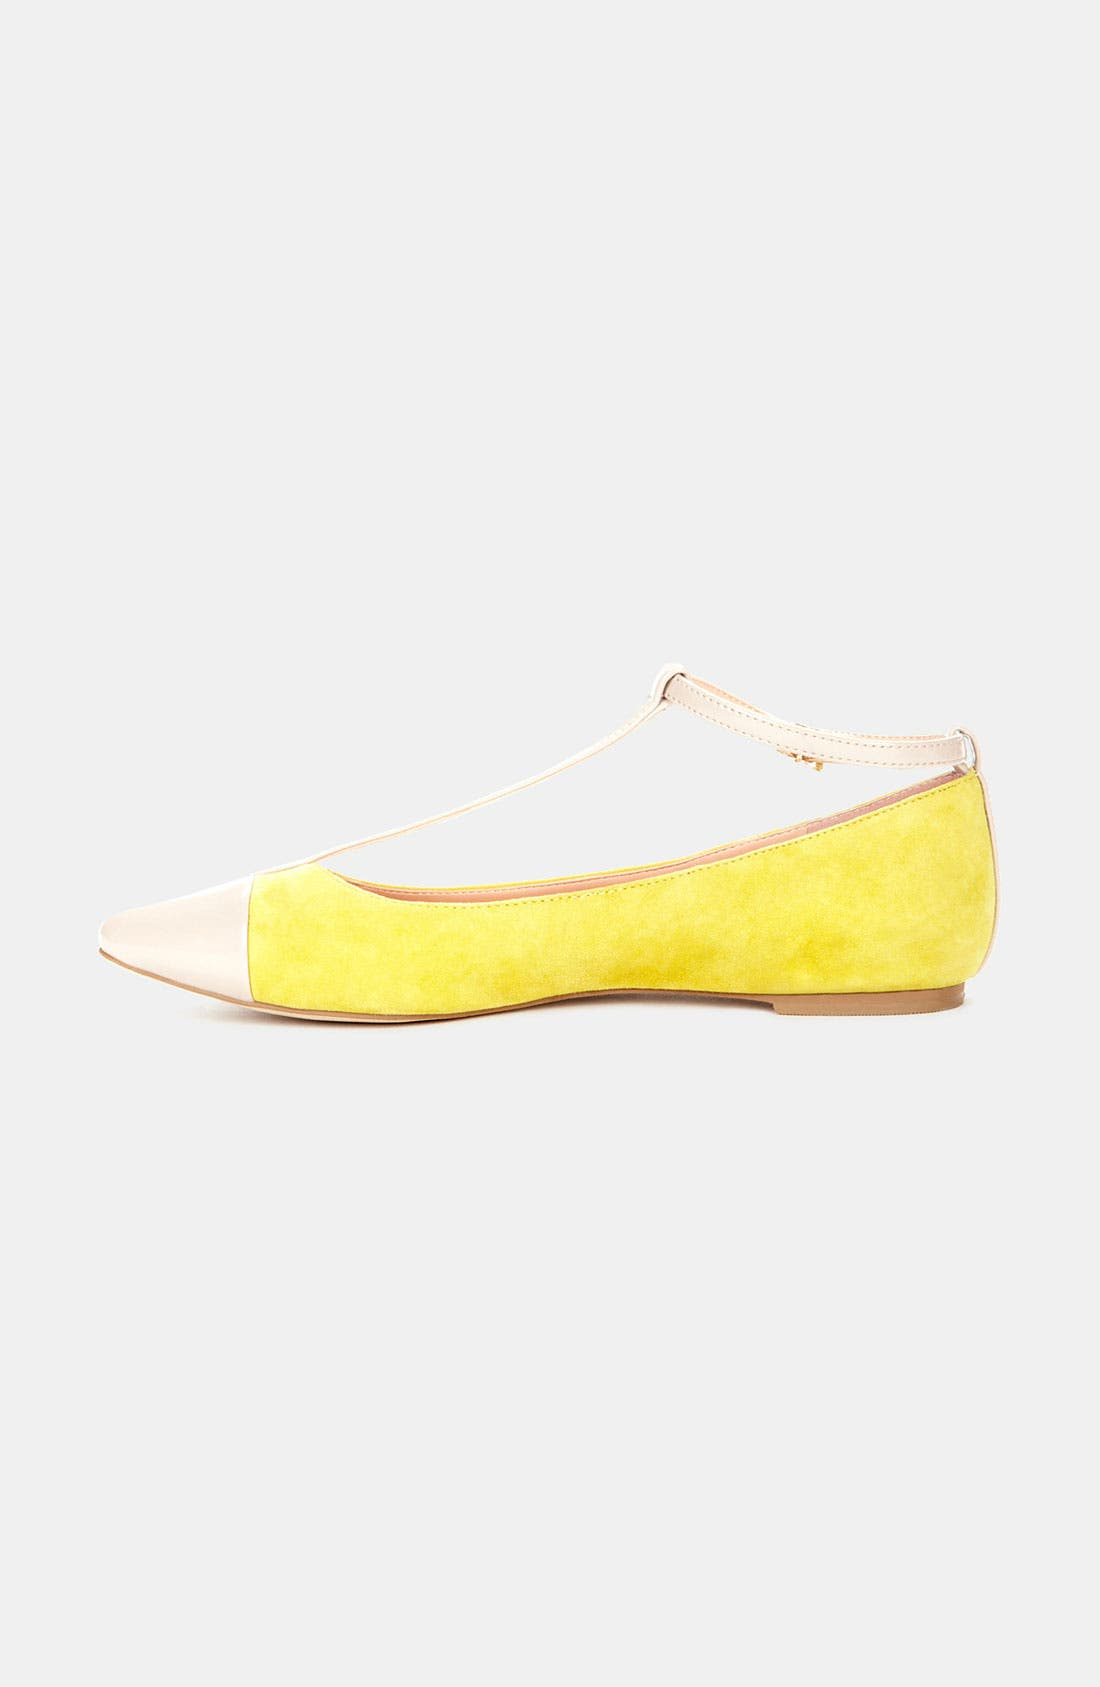 ,                             Julianne Hough for Sole Society 'Addy' Flat,                             Alternate thumbnail 29, color,                             330